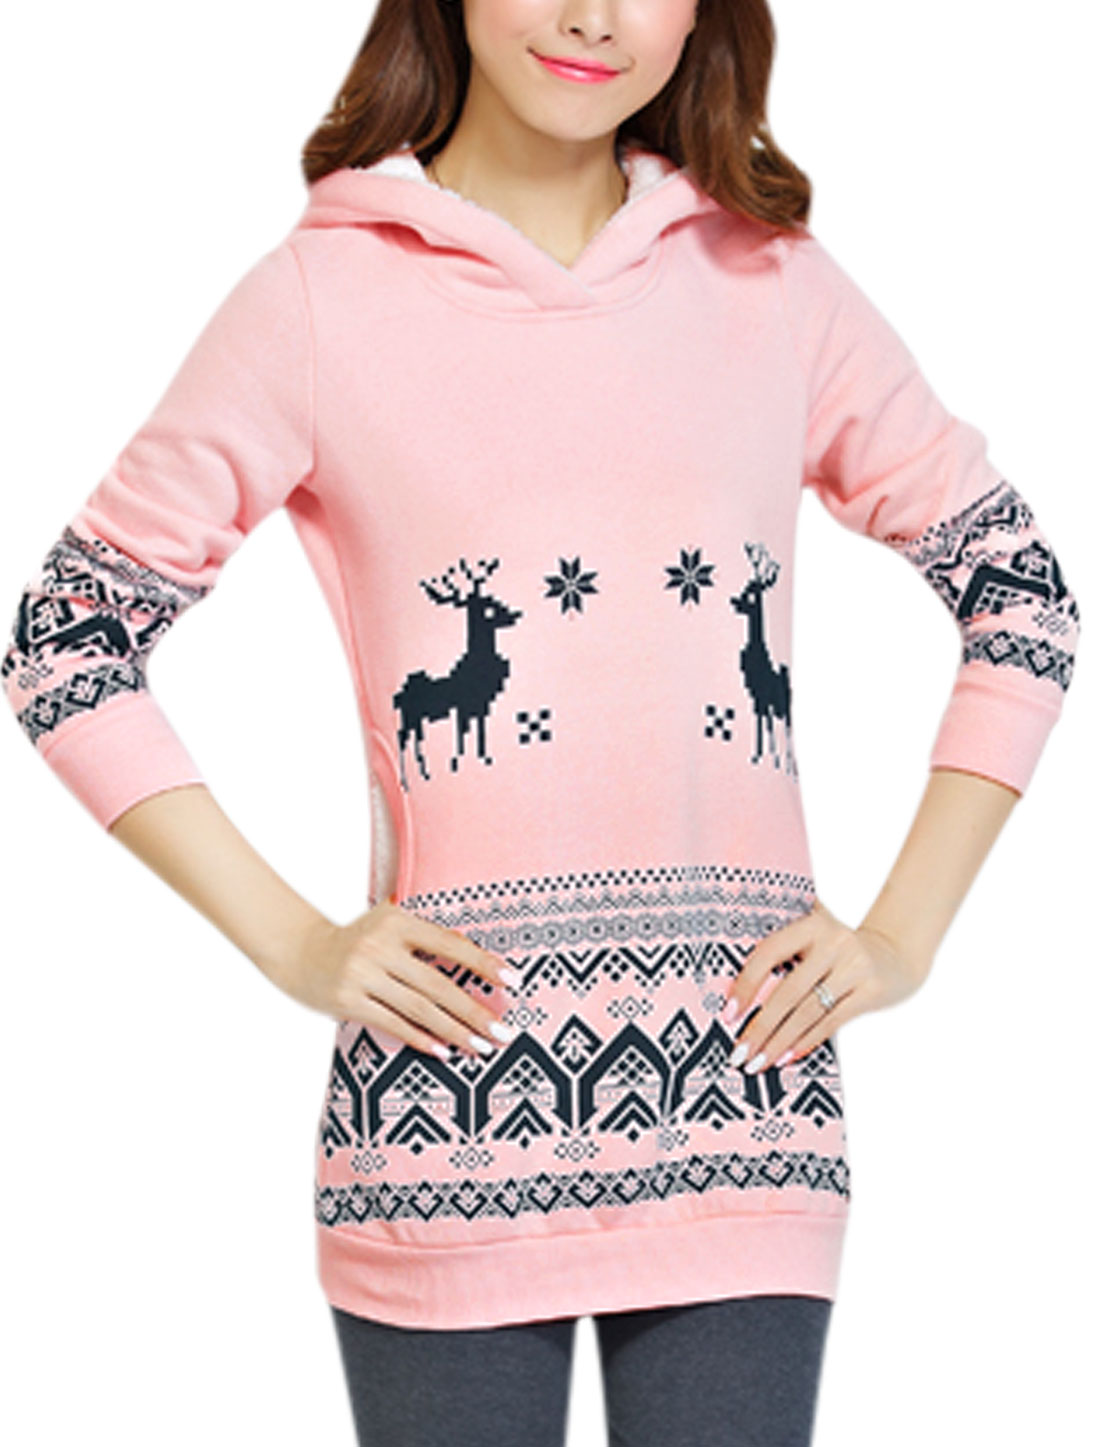 Double Side Pockets Long Sleeves Leisure Tunic Sweatshirt for Women Pink XS